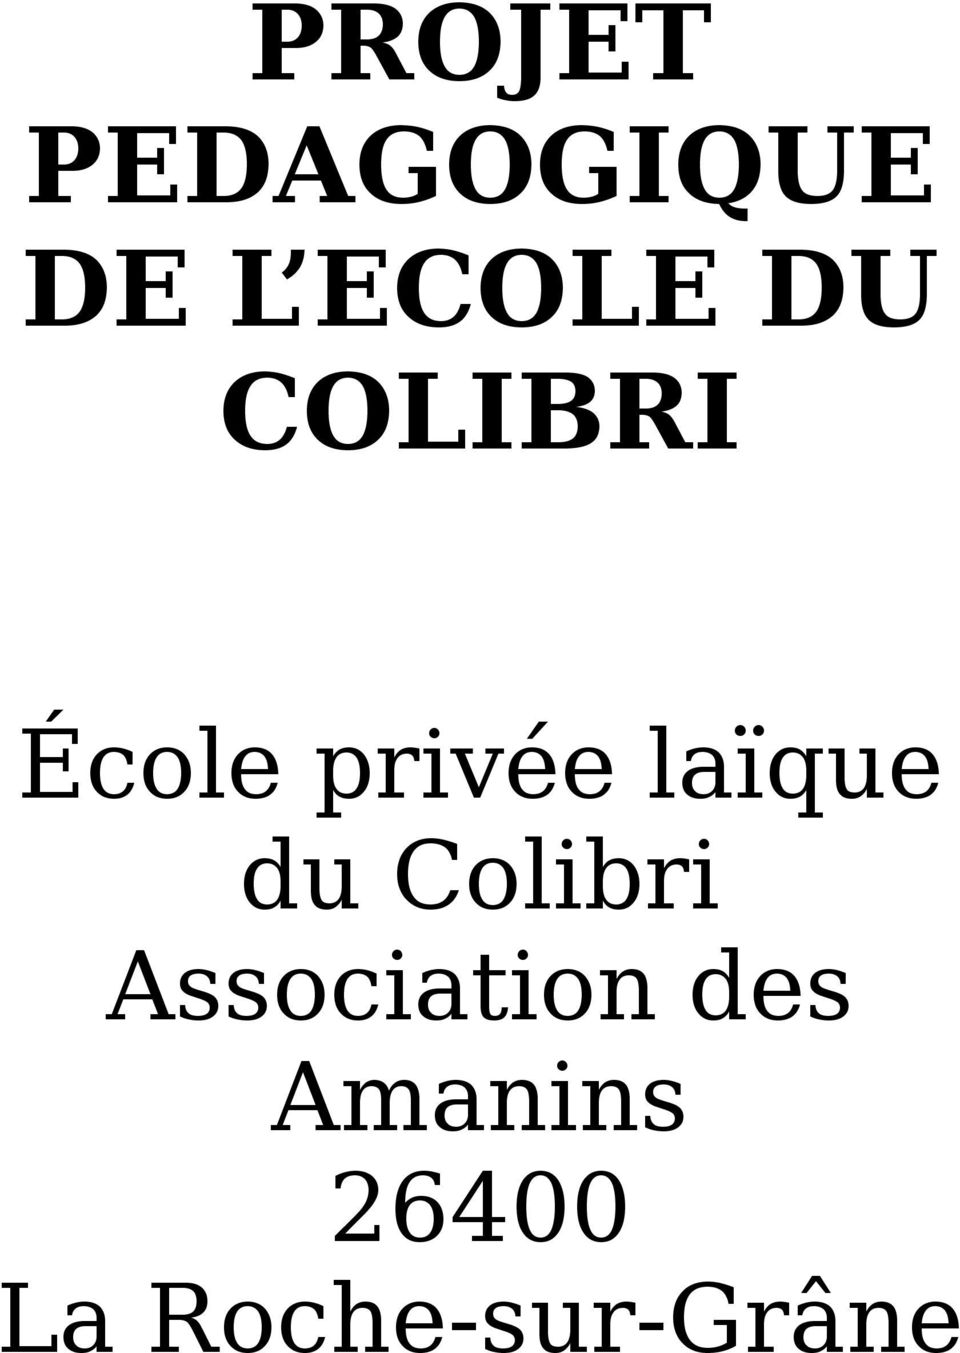 laïque du Colibri Association